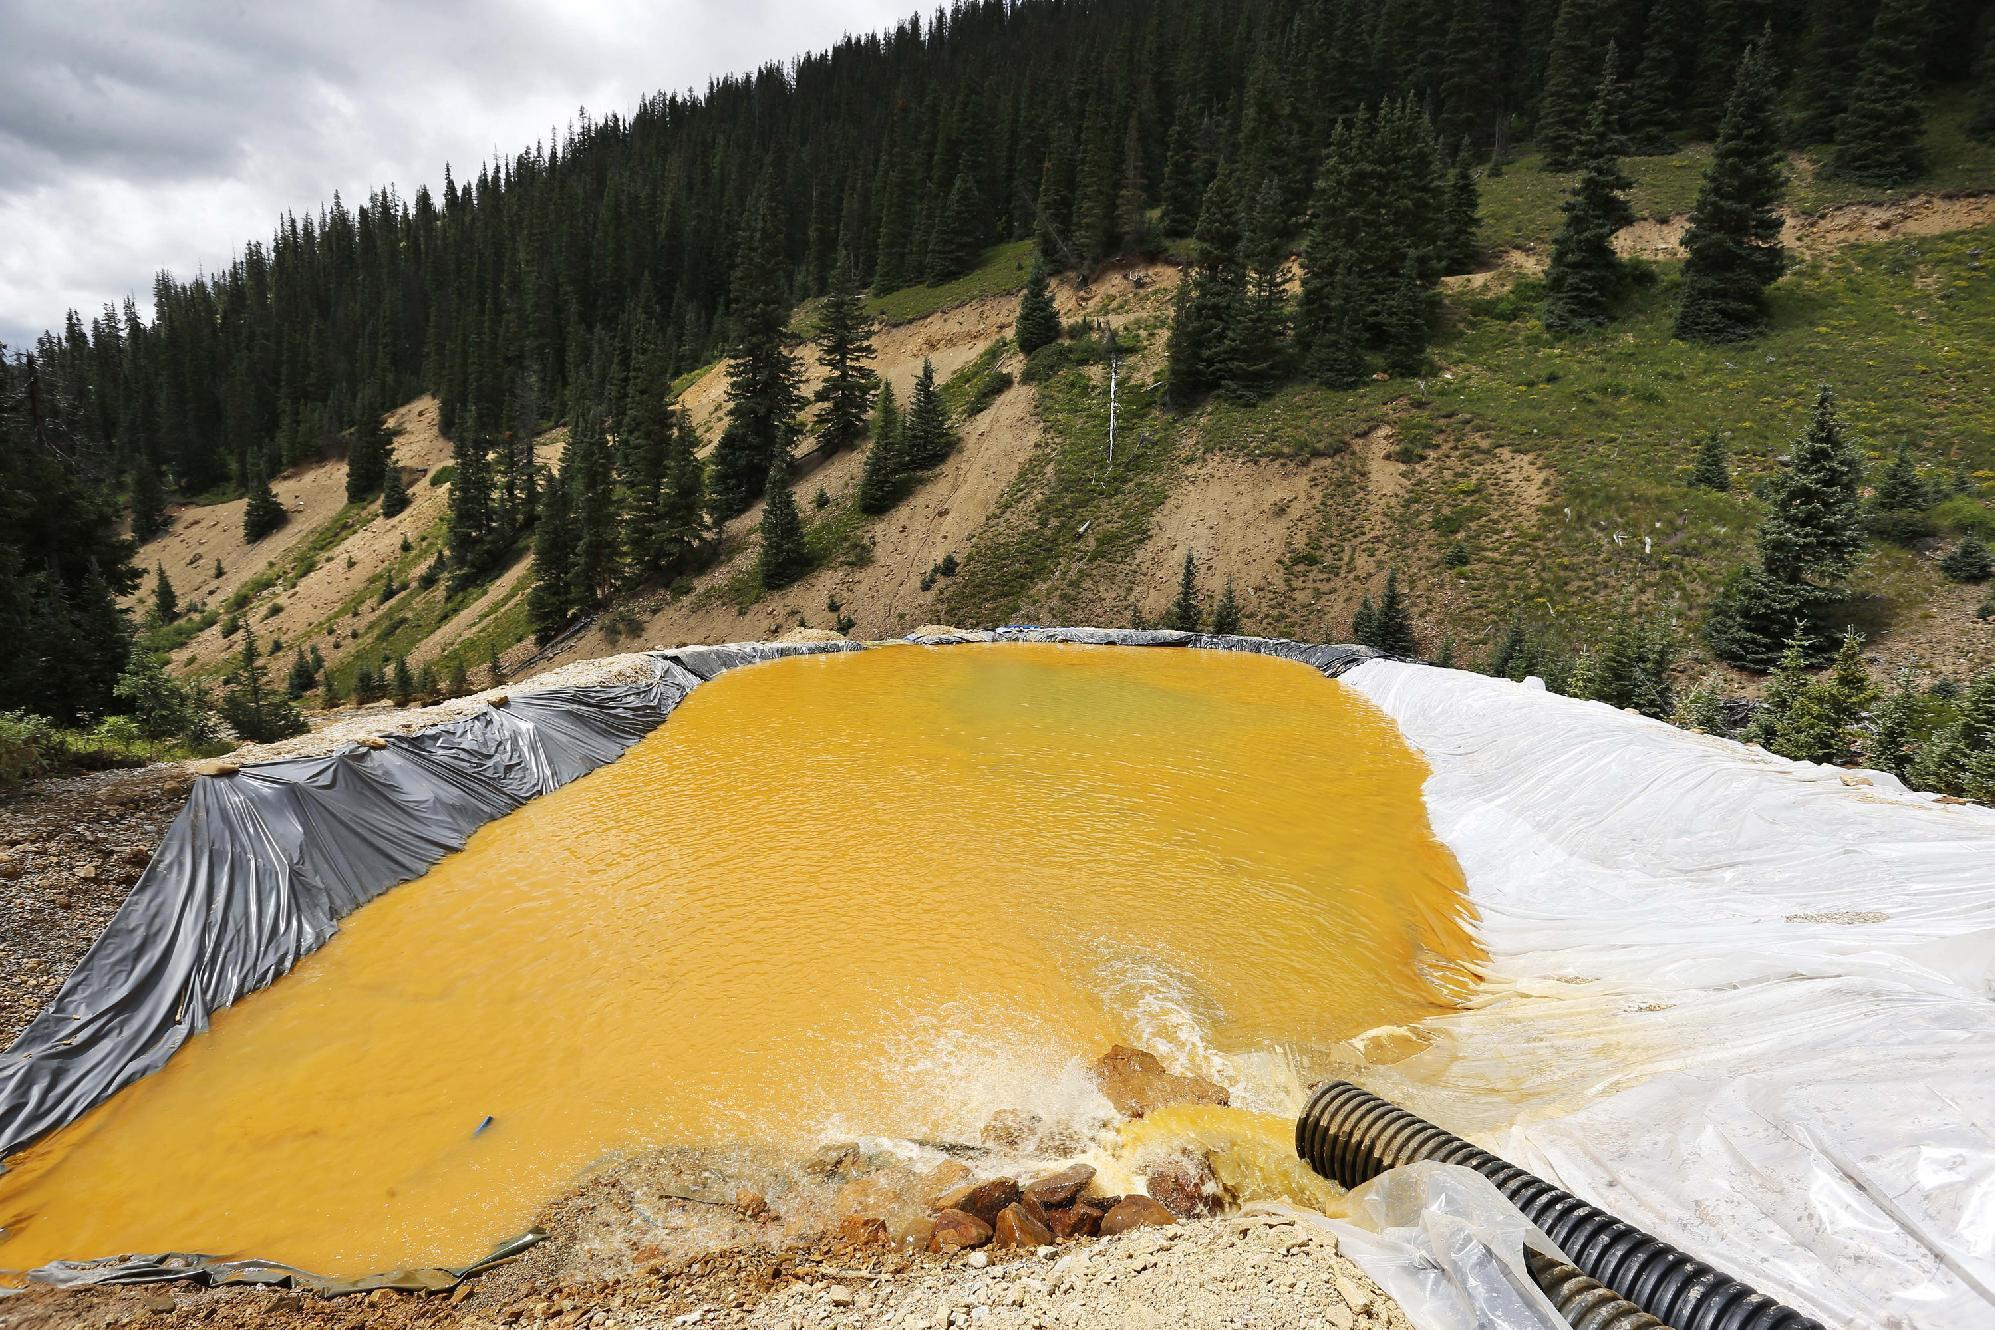 EPA: Mine spill dumped 880,000 pounds of metals in river